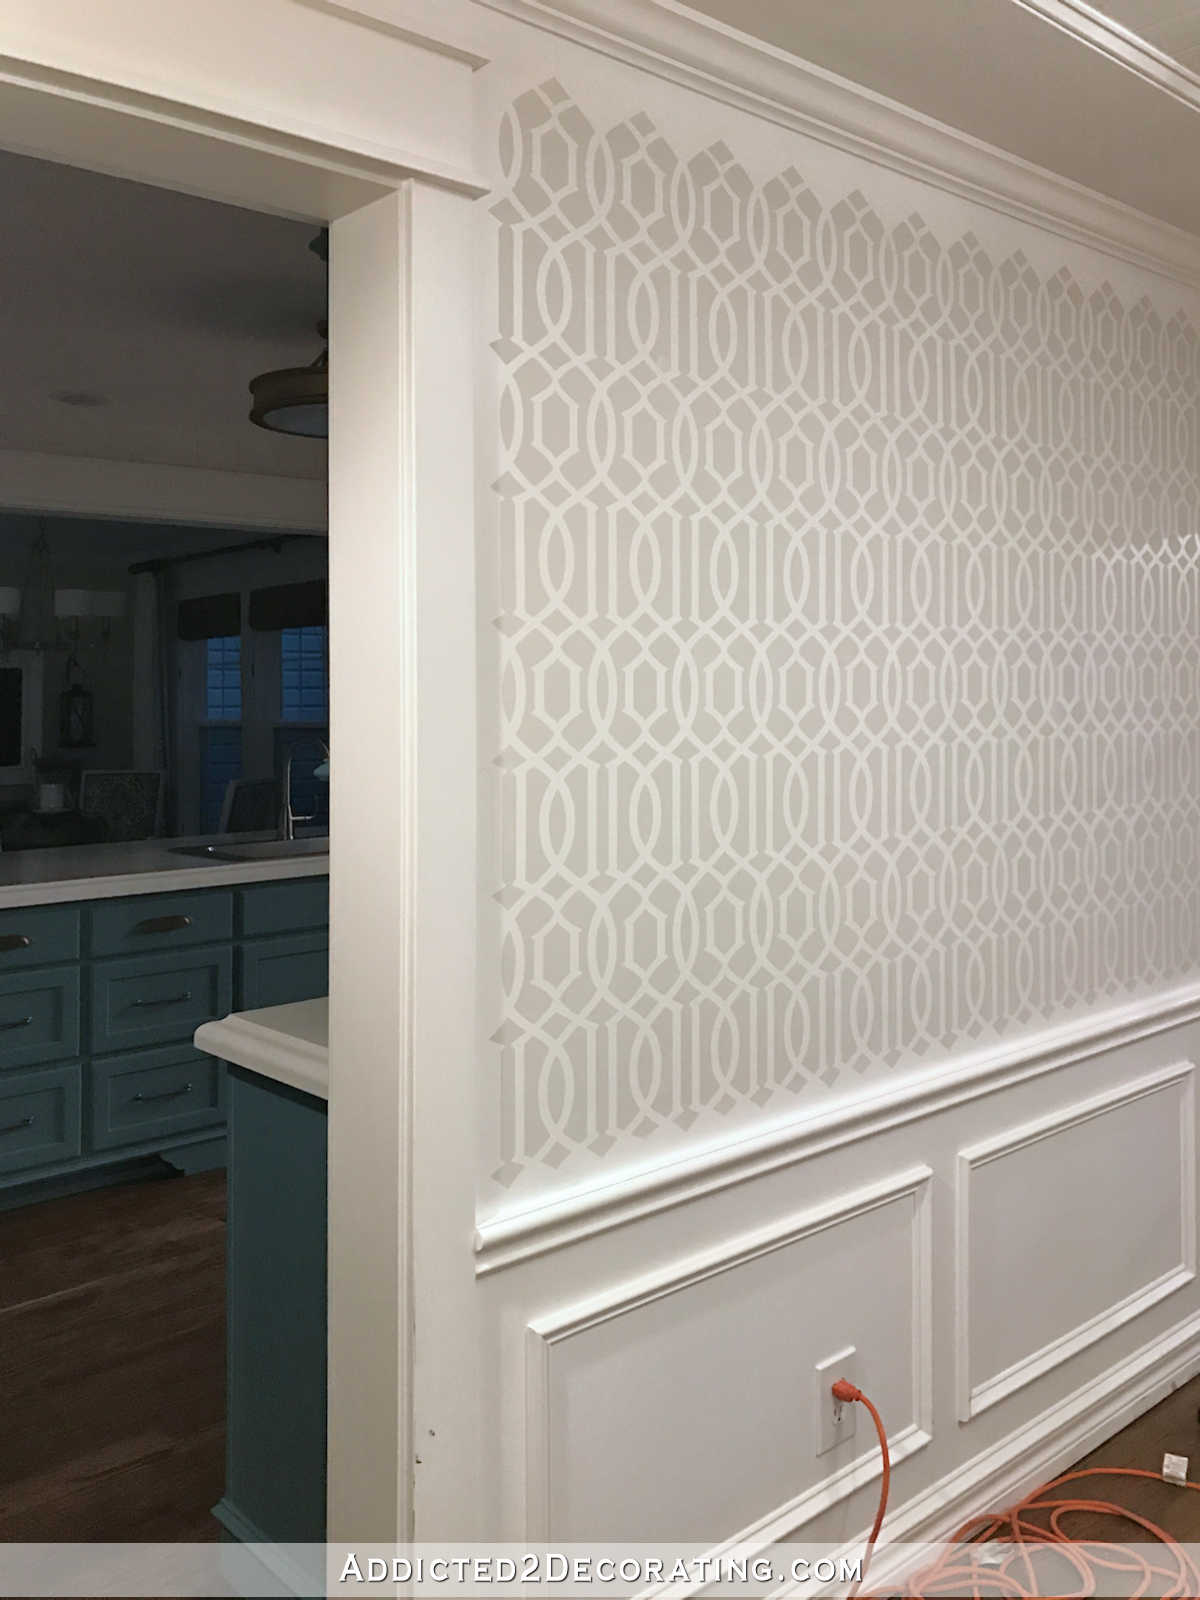 stenciled trellis design in Behr Polar Bear and Benjamin Moore Classic Gray on music room walls - 10